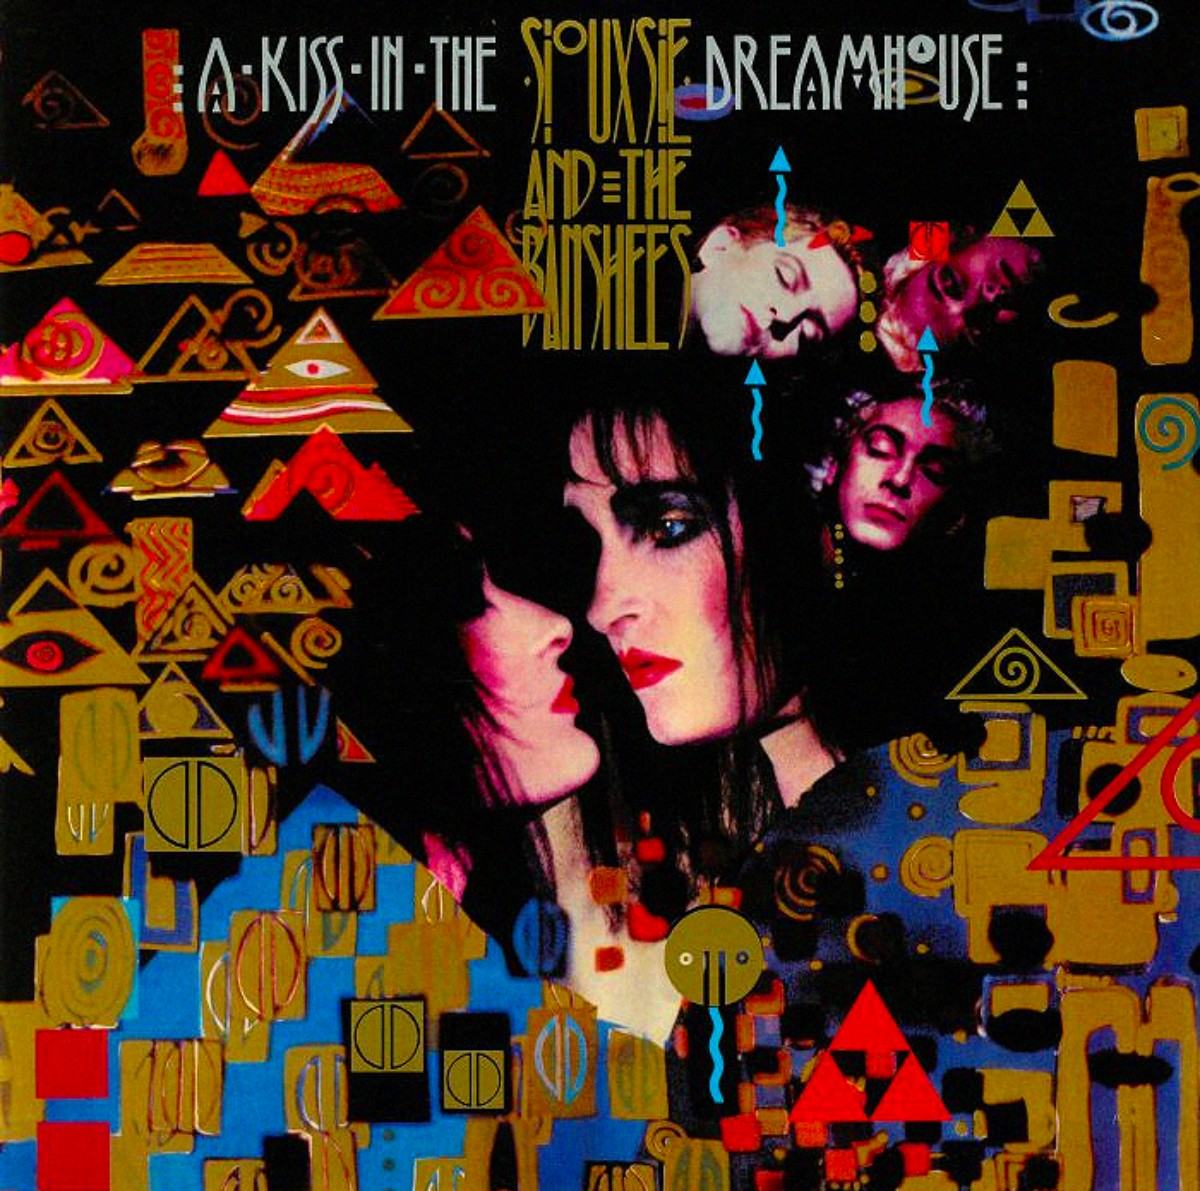 Siouxsie And The Banshees, альбом «A Kiss in the Dreamhouse» (1982)